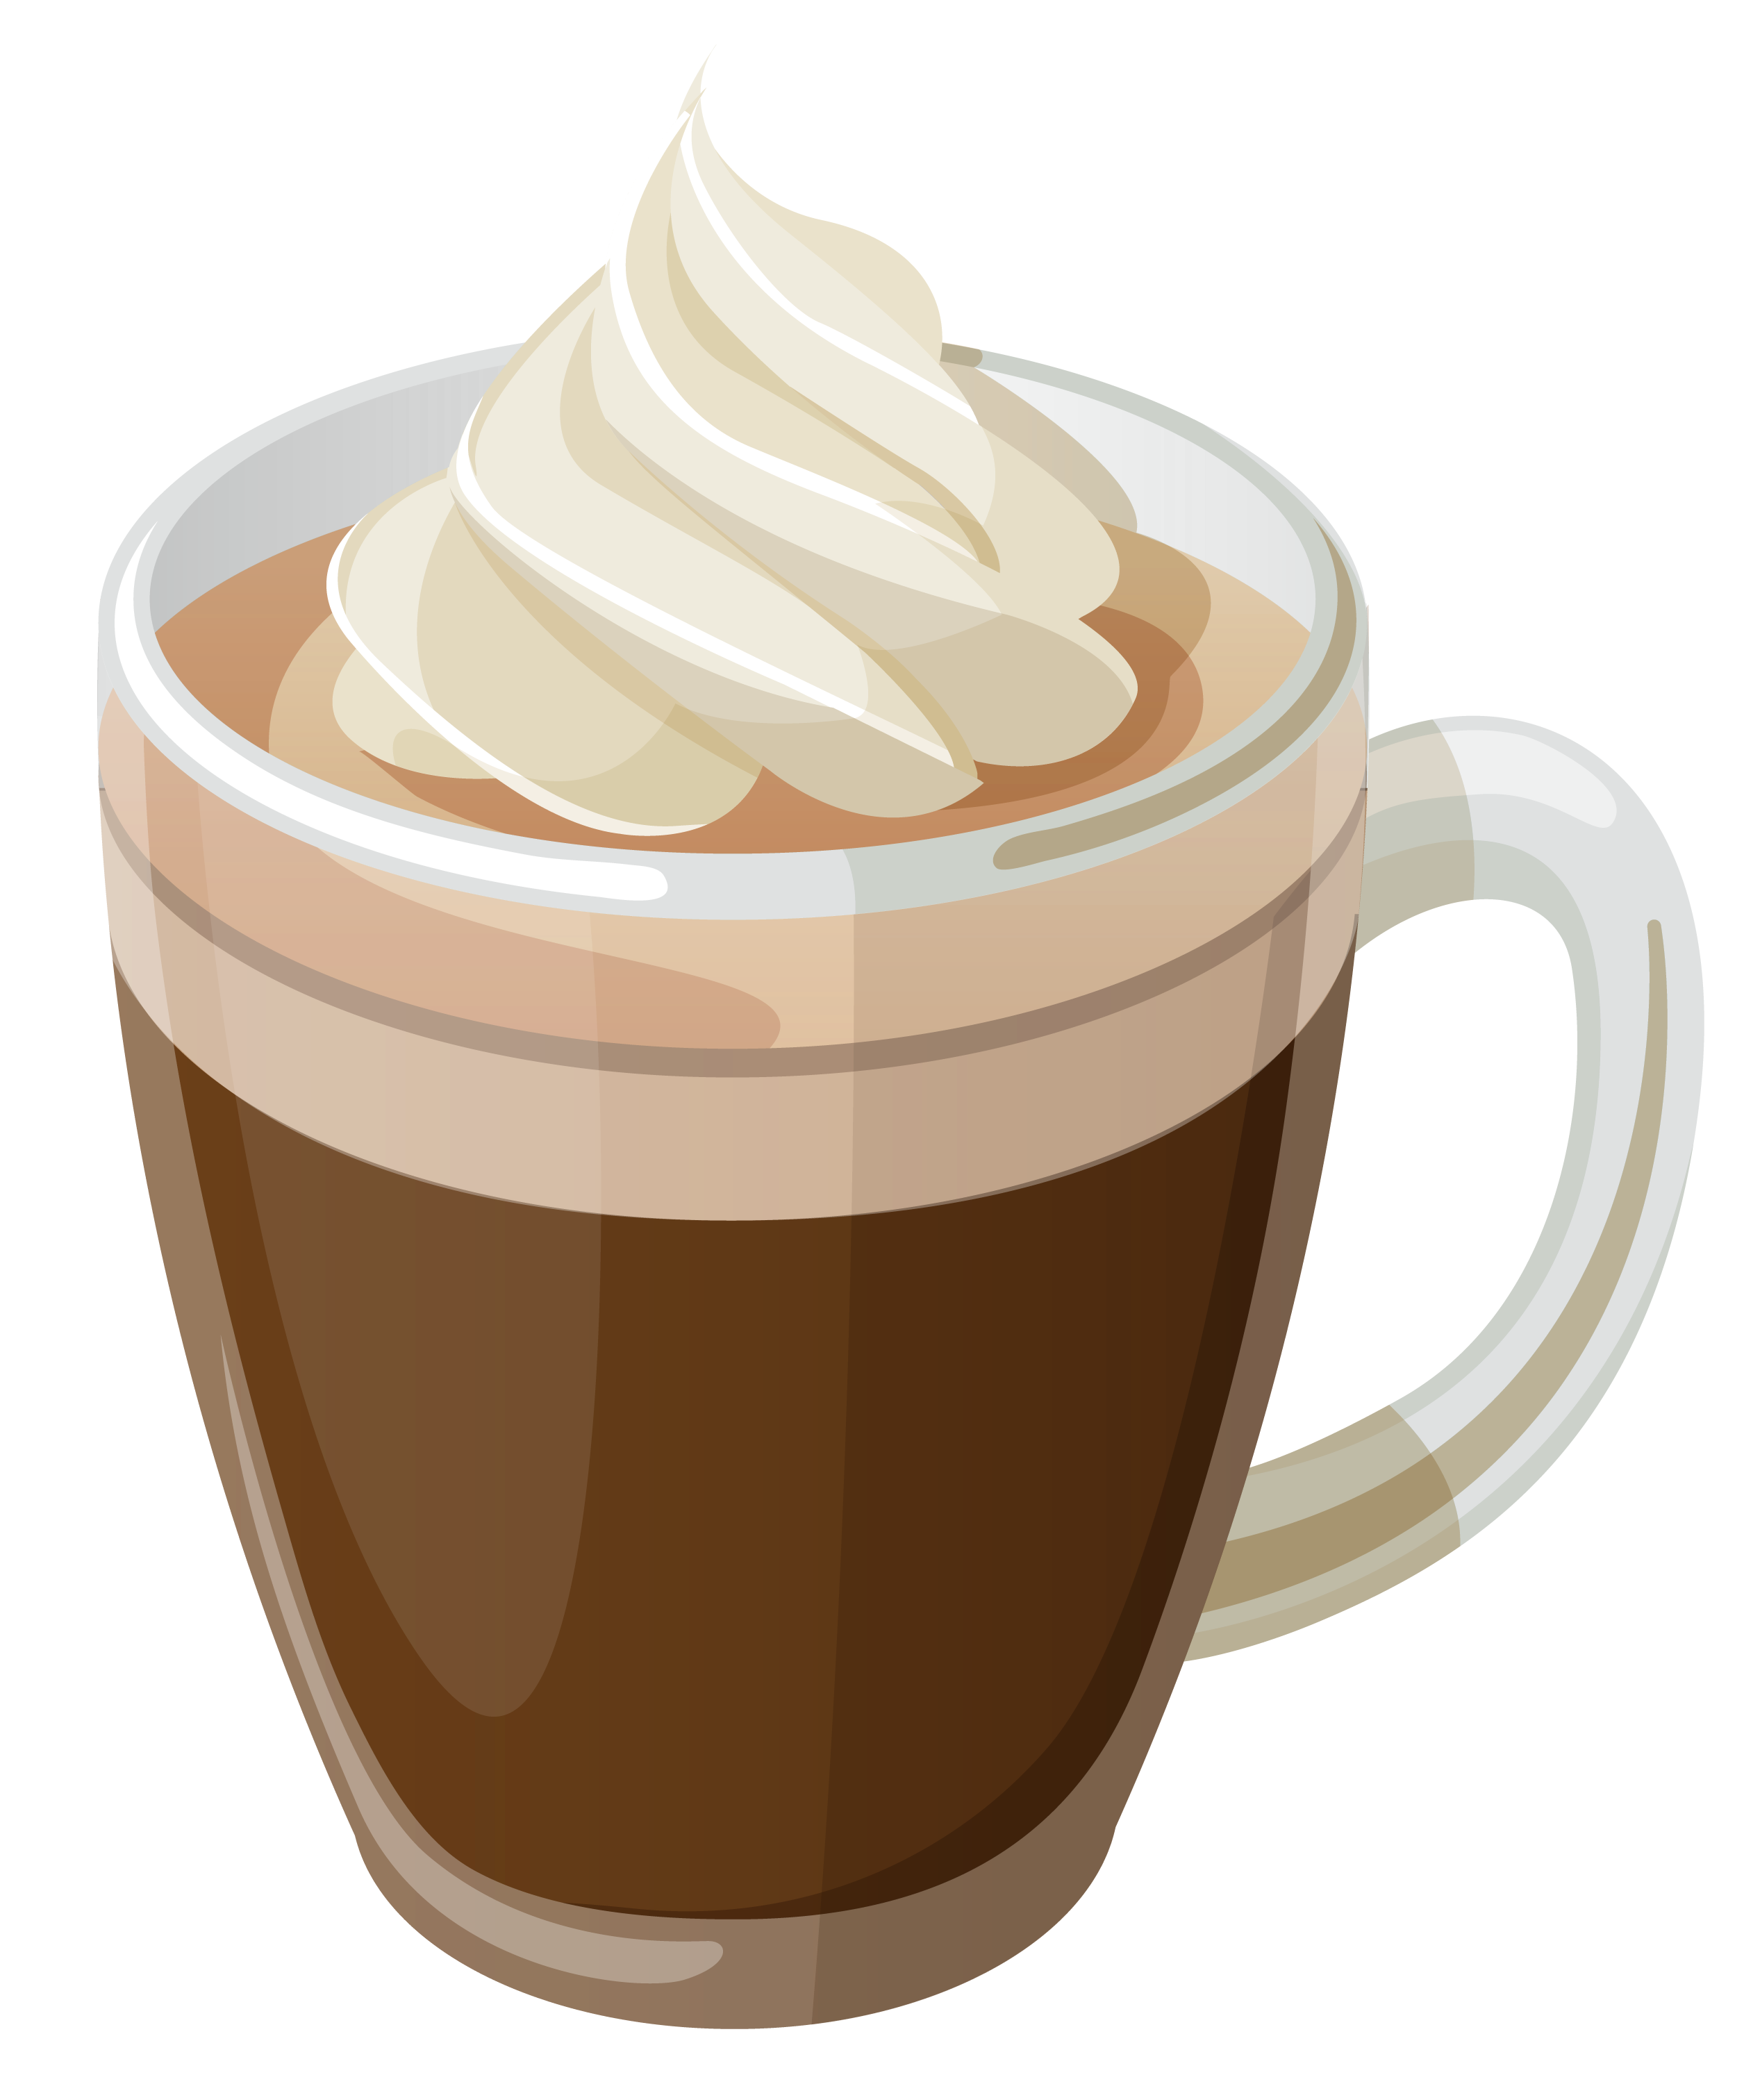 Coffee with cream png. Yogurt clipart cute